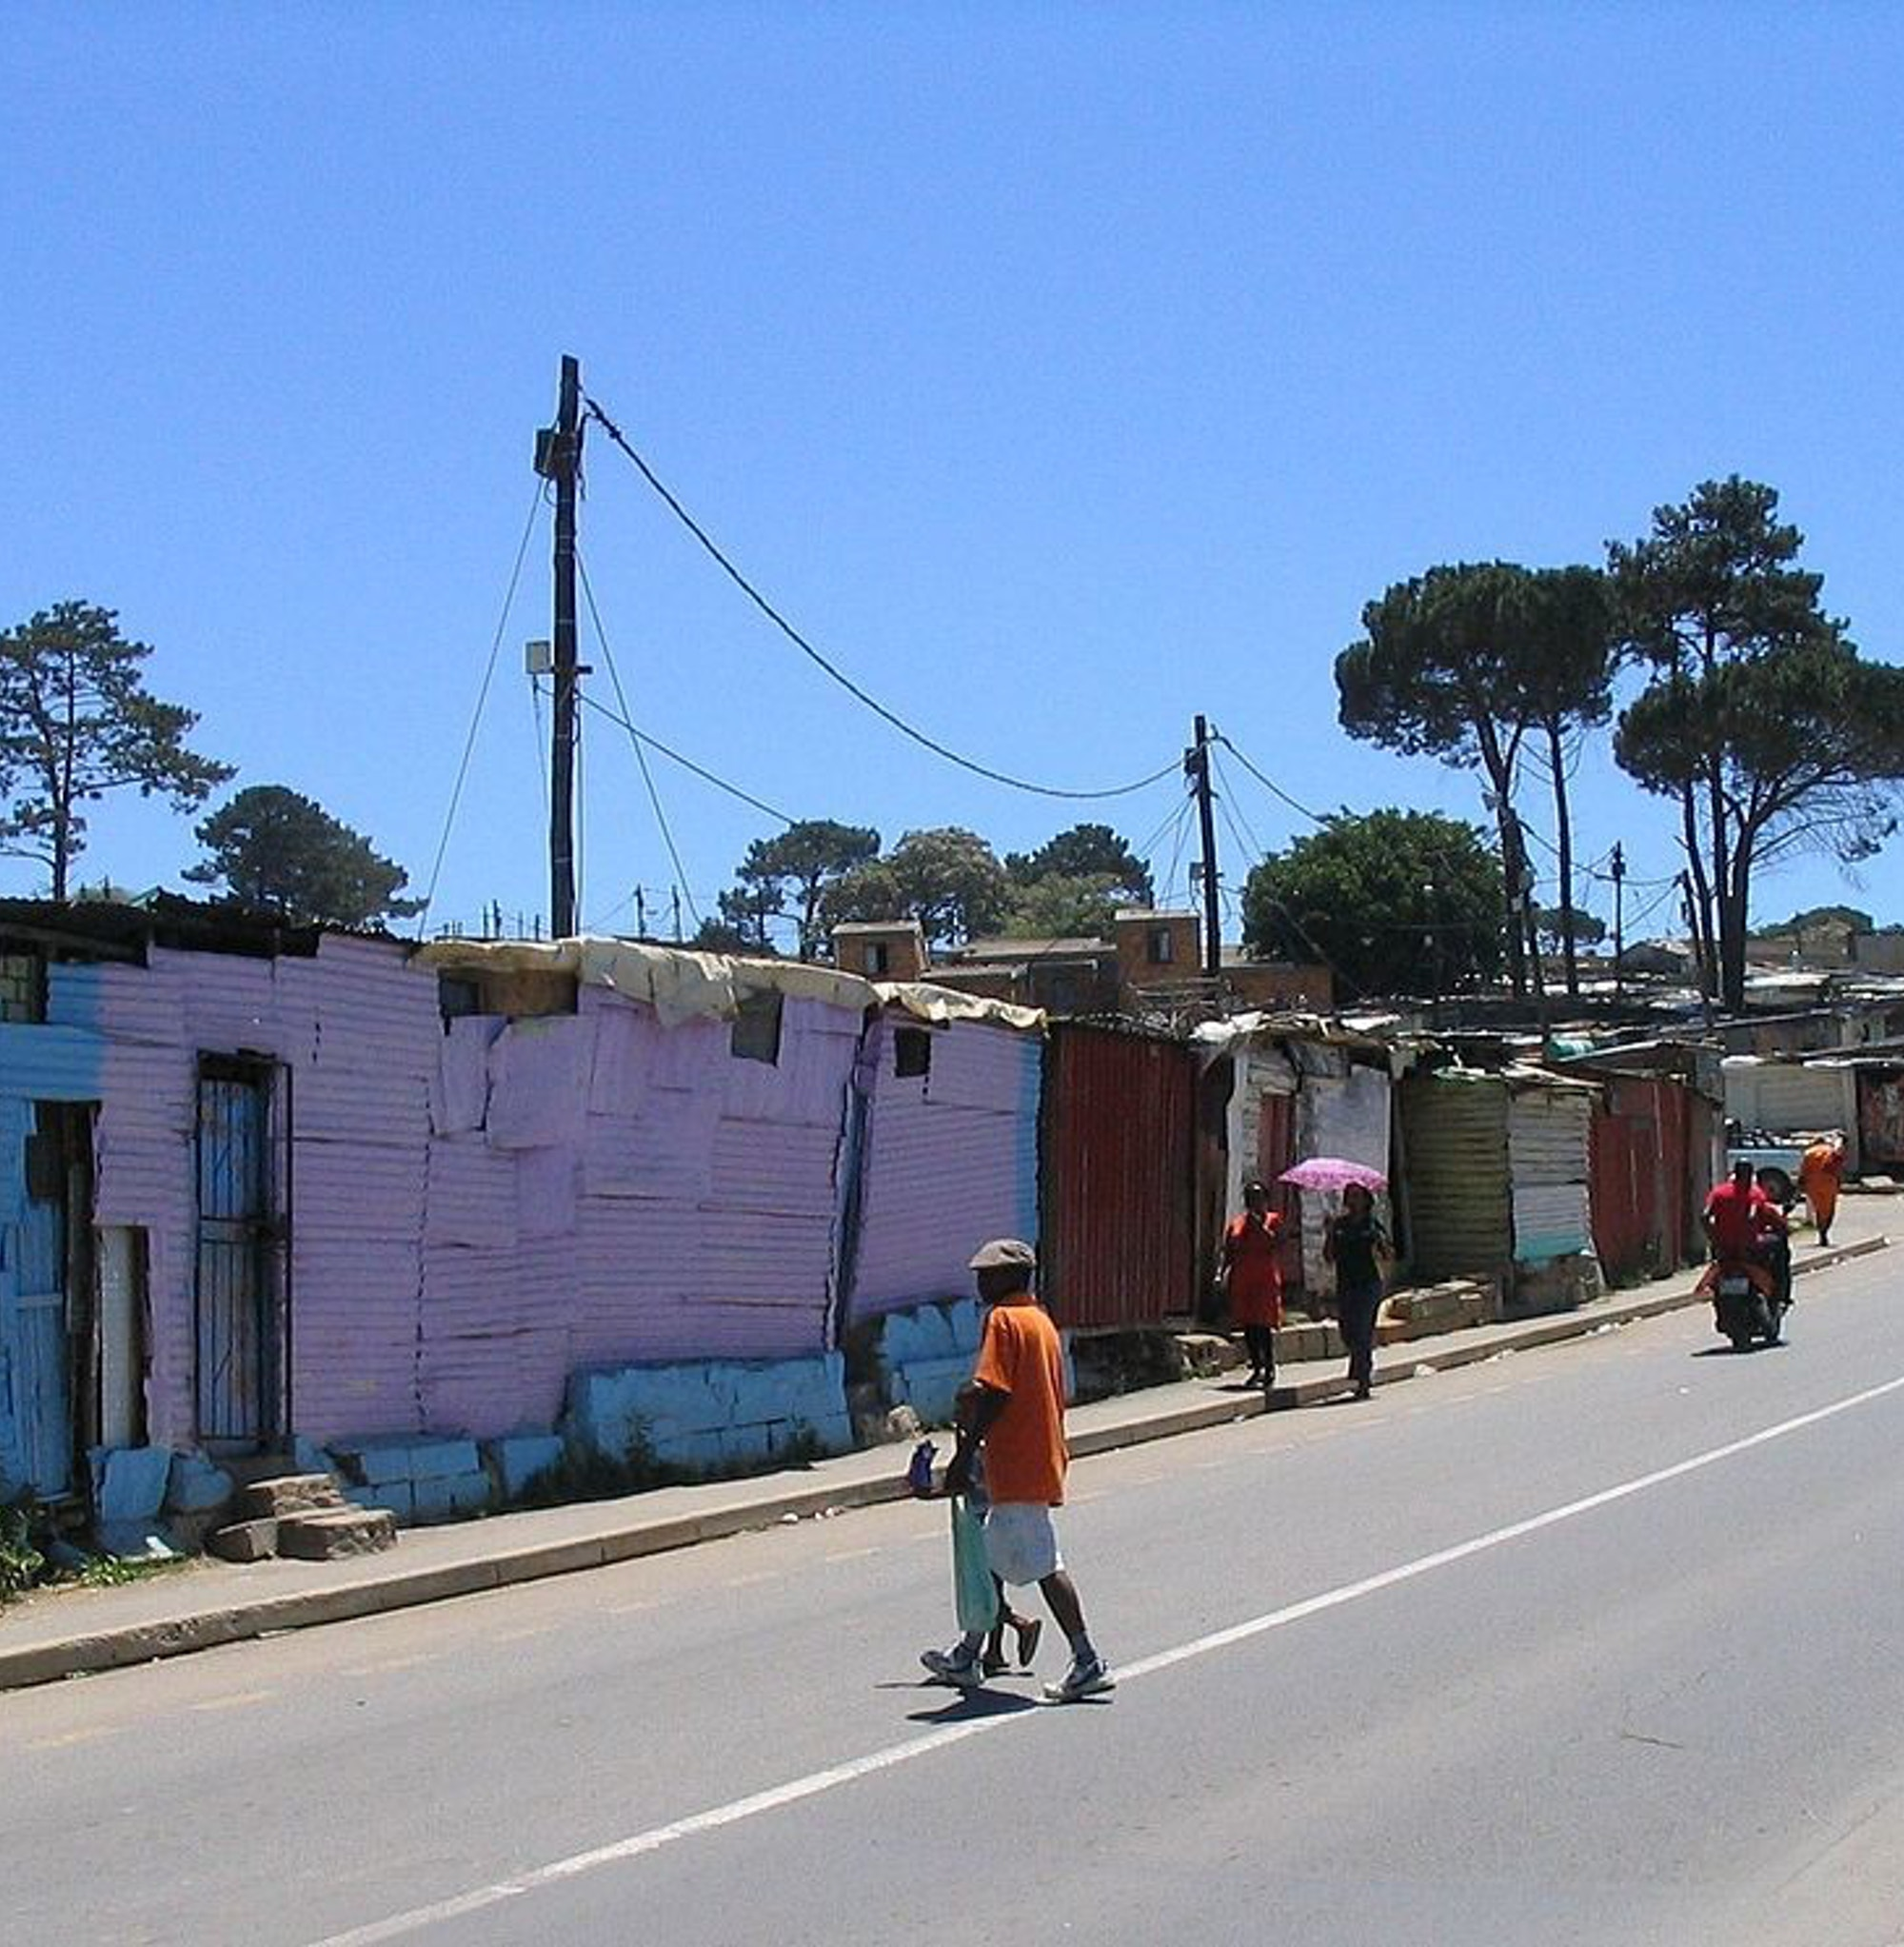 Streets of Kayamandi 10